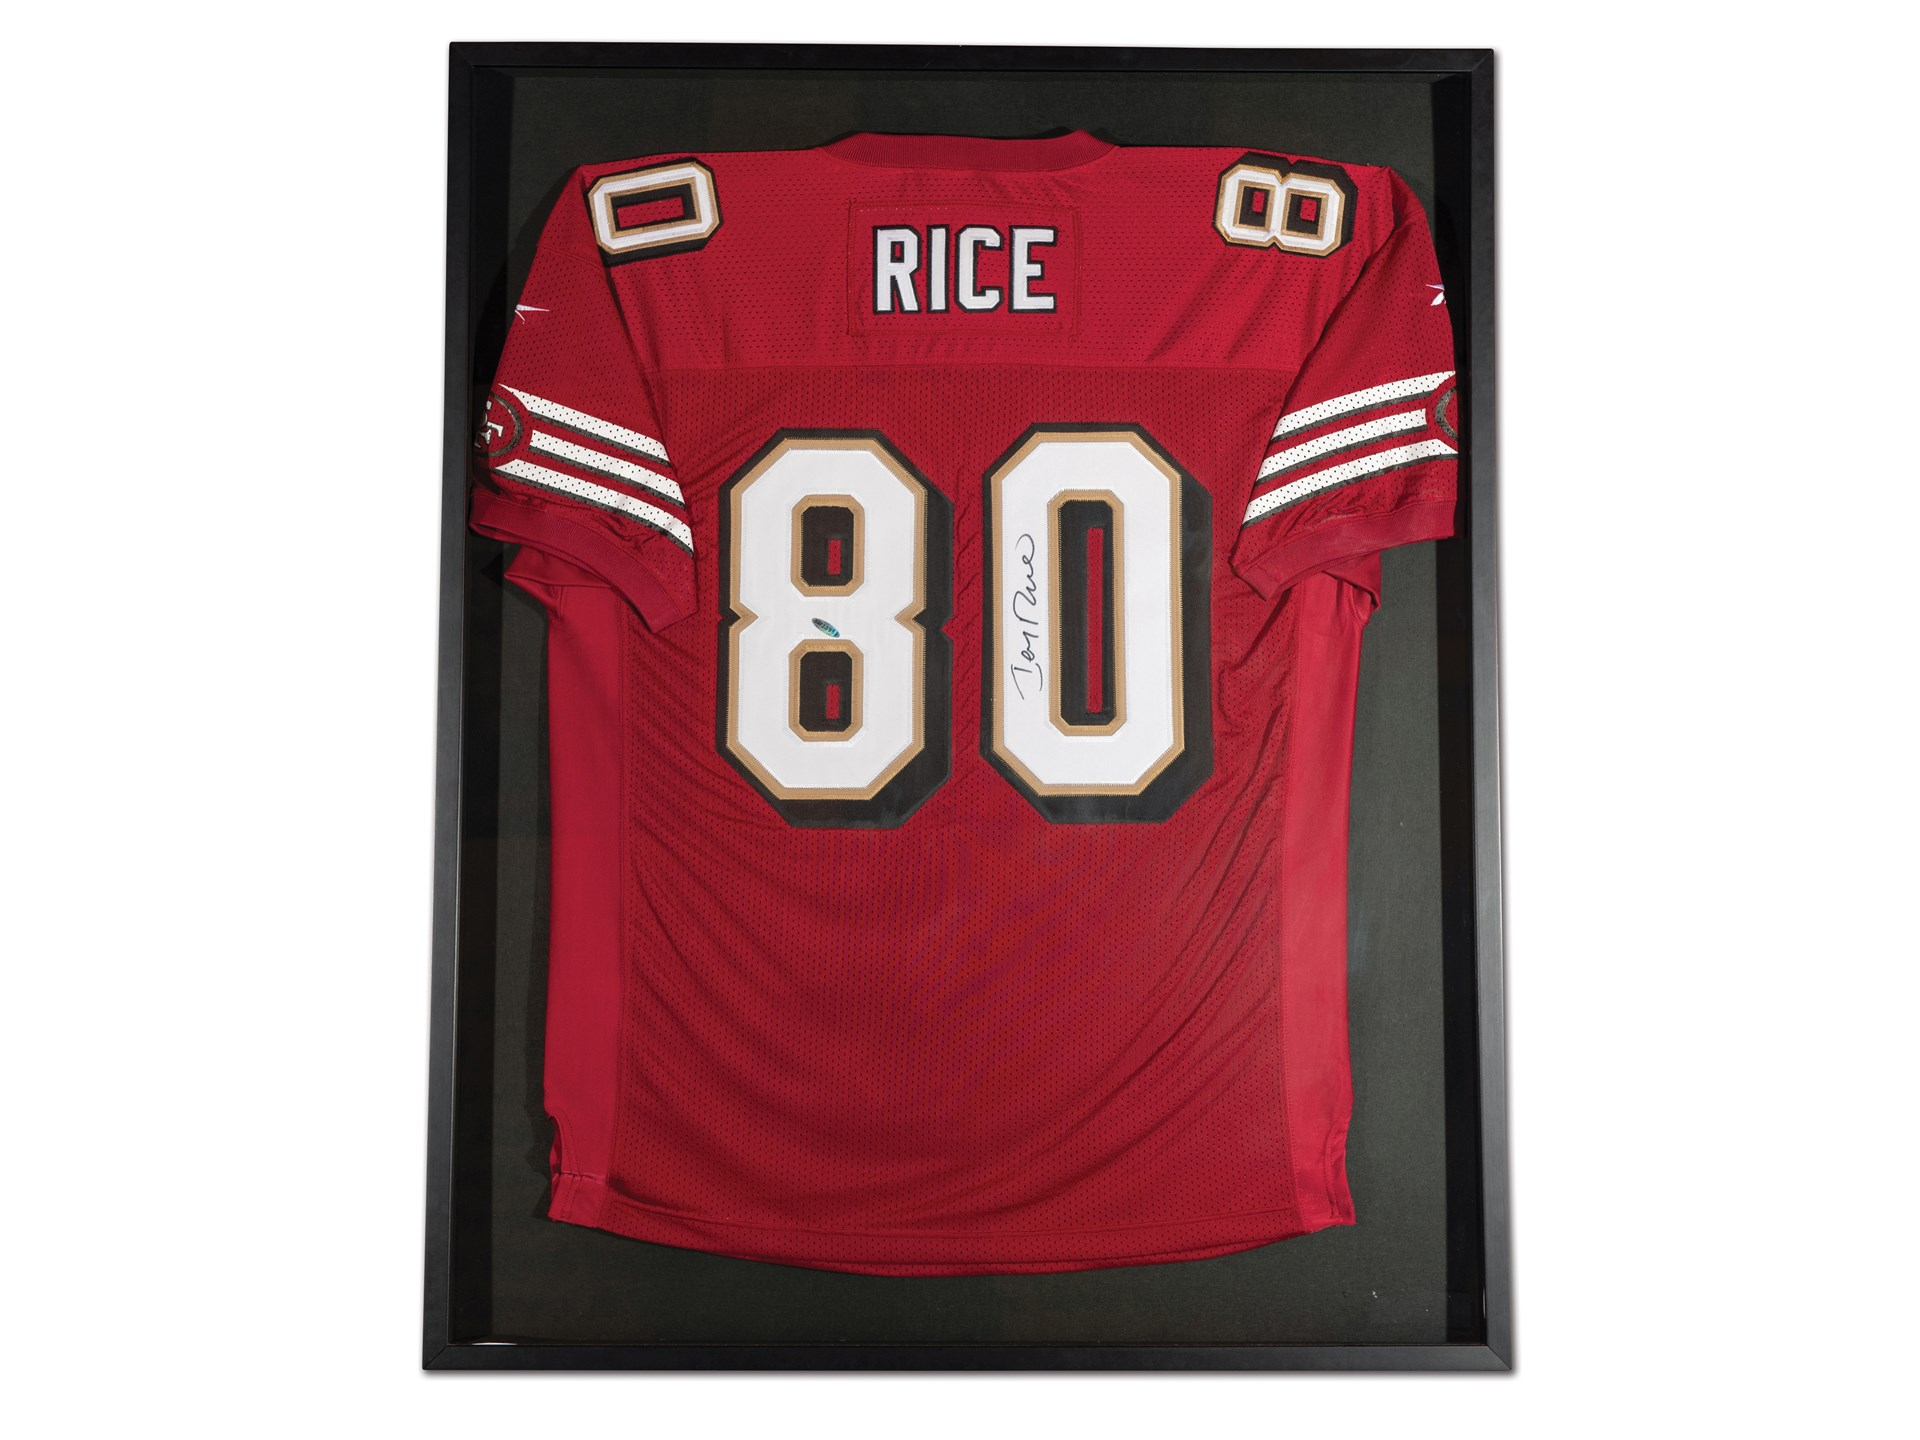 wholesale dealer ca113 3606a RM Sotheby's - Jerry Rice San Francisco 49ers Autographed ...